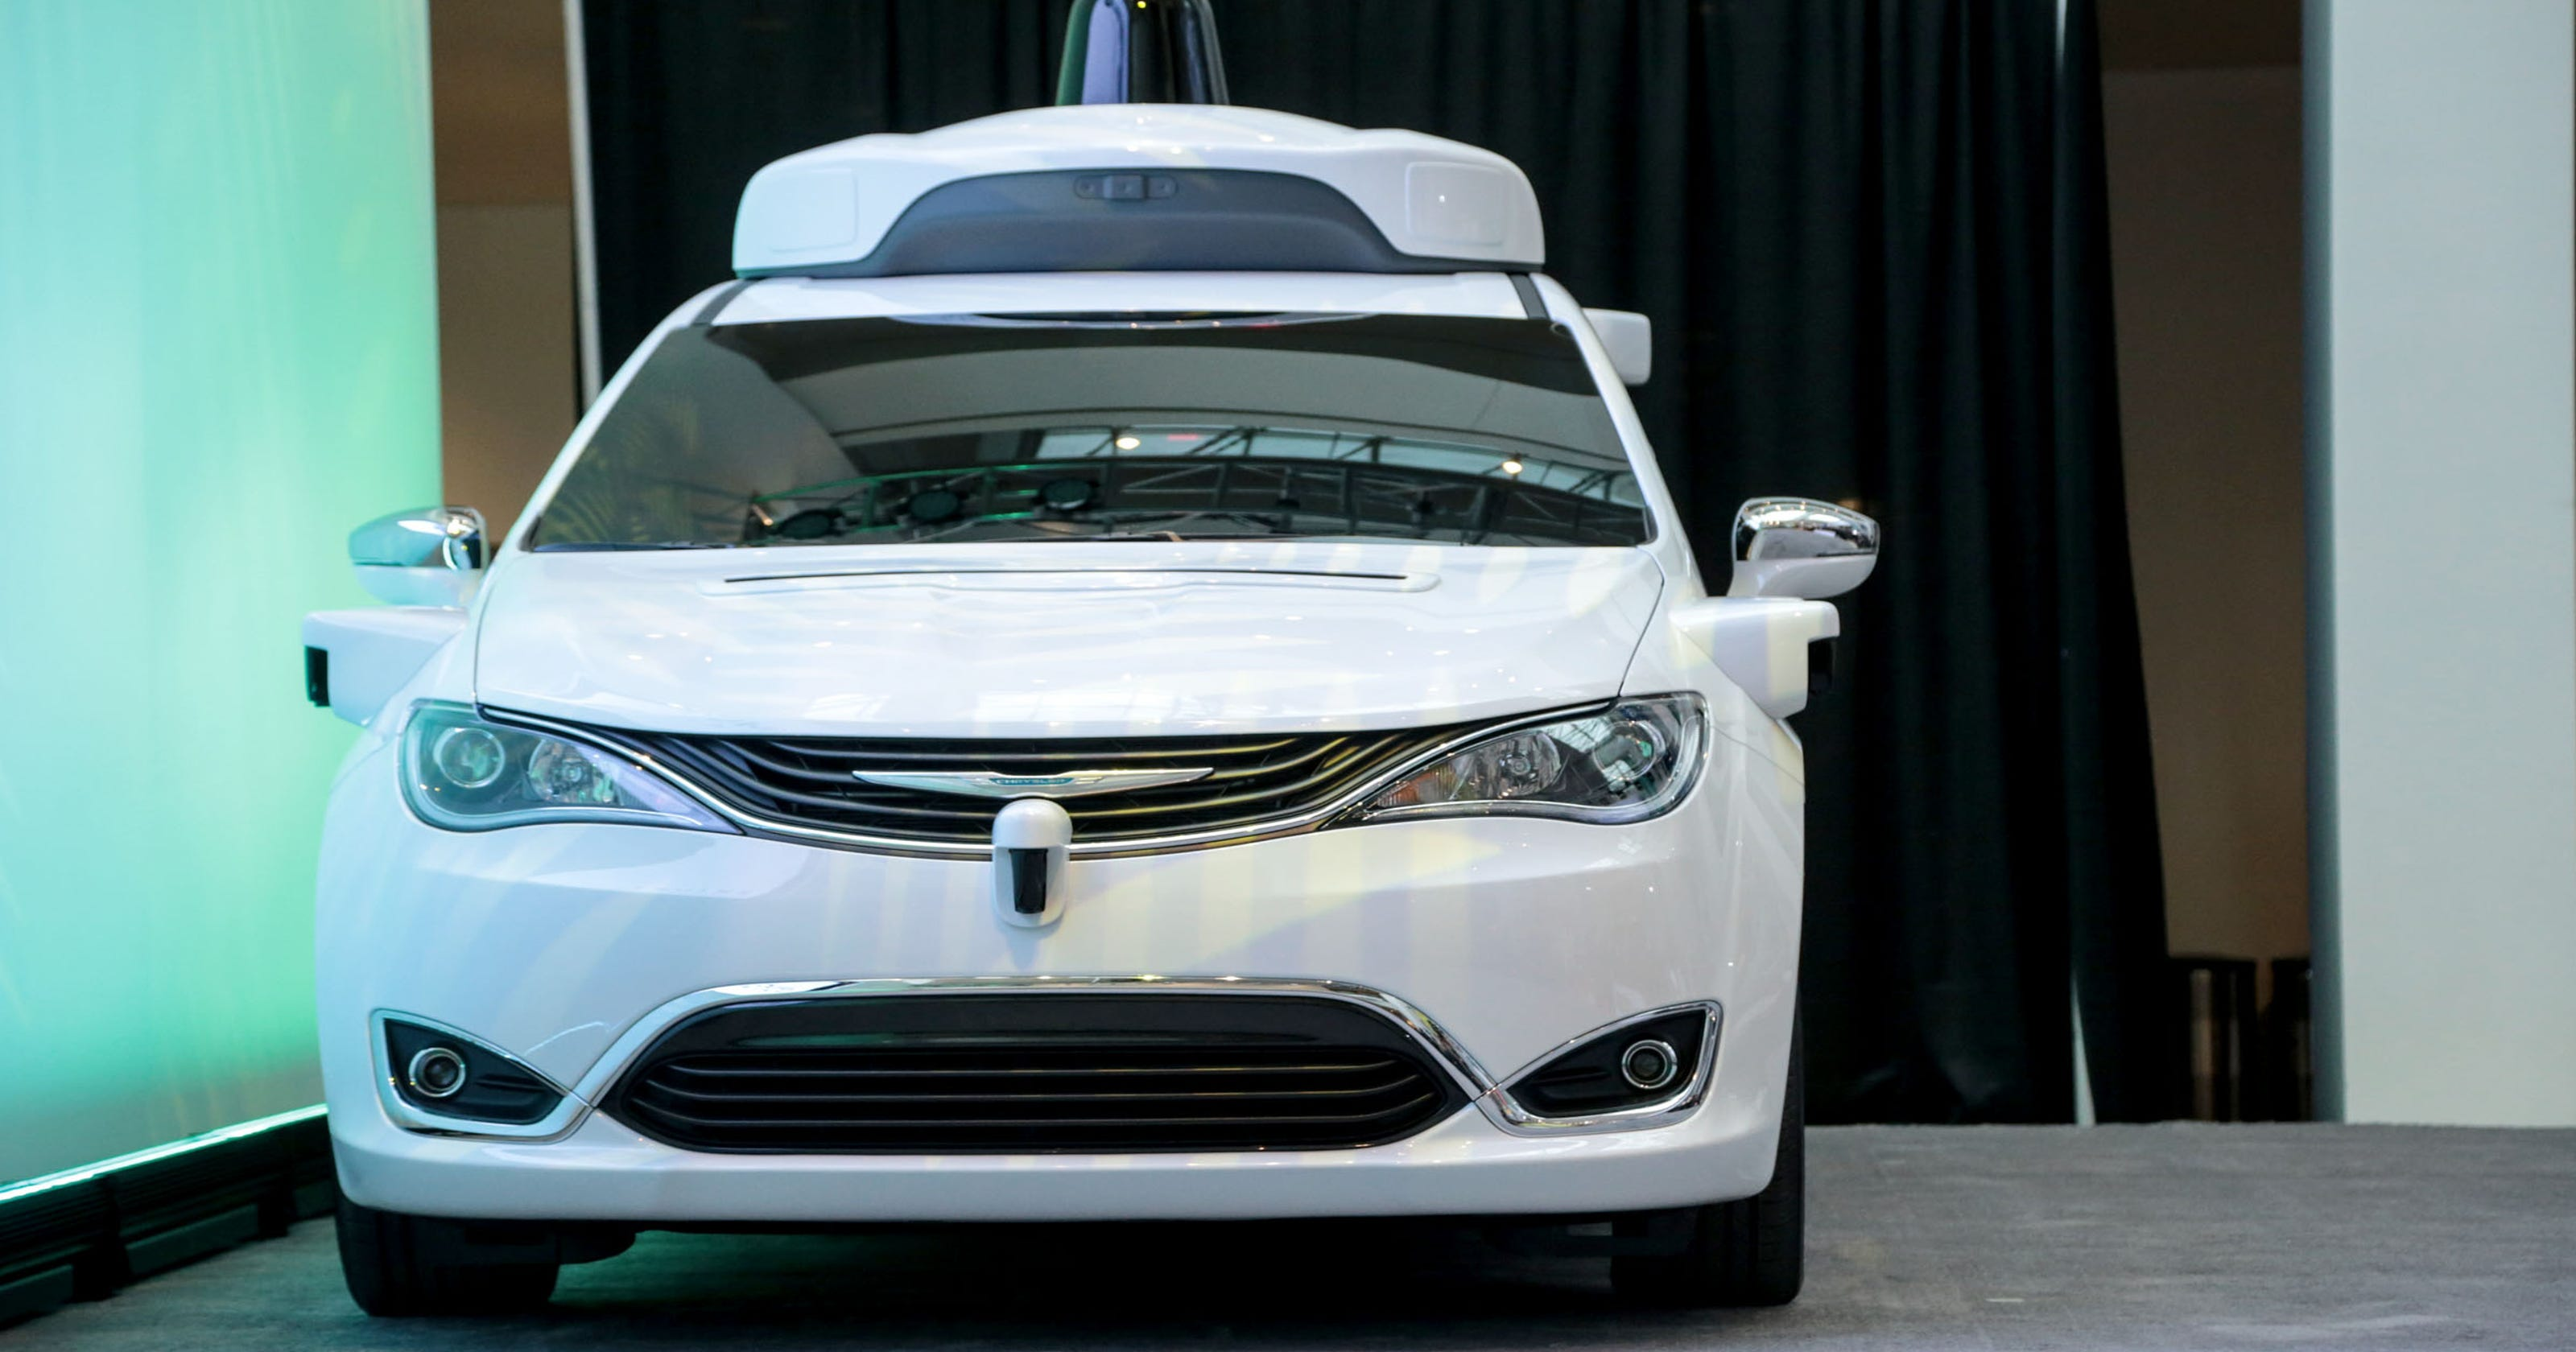 Fca Takes Diffe Path To Self Driving Future Than Ford Gm